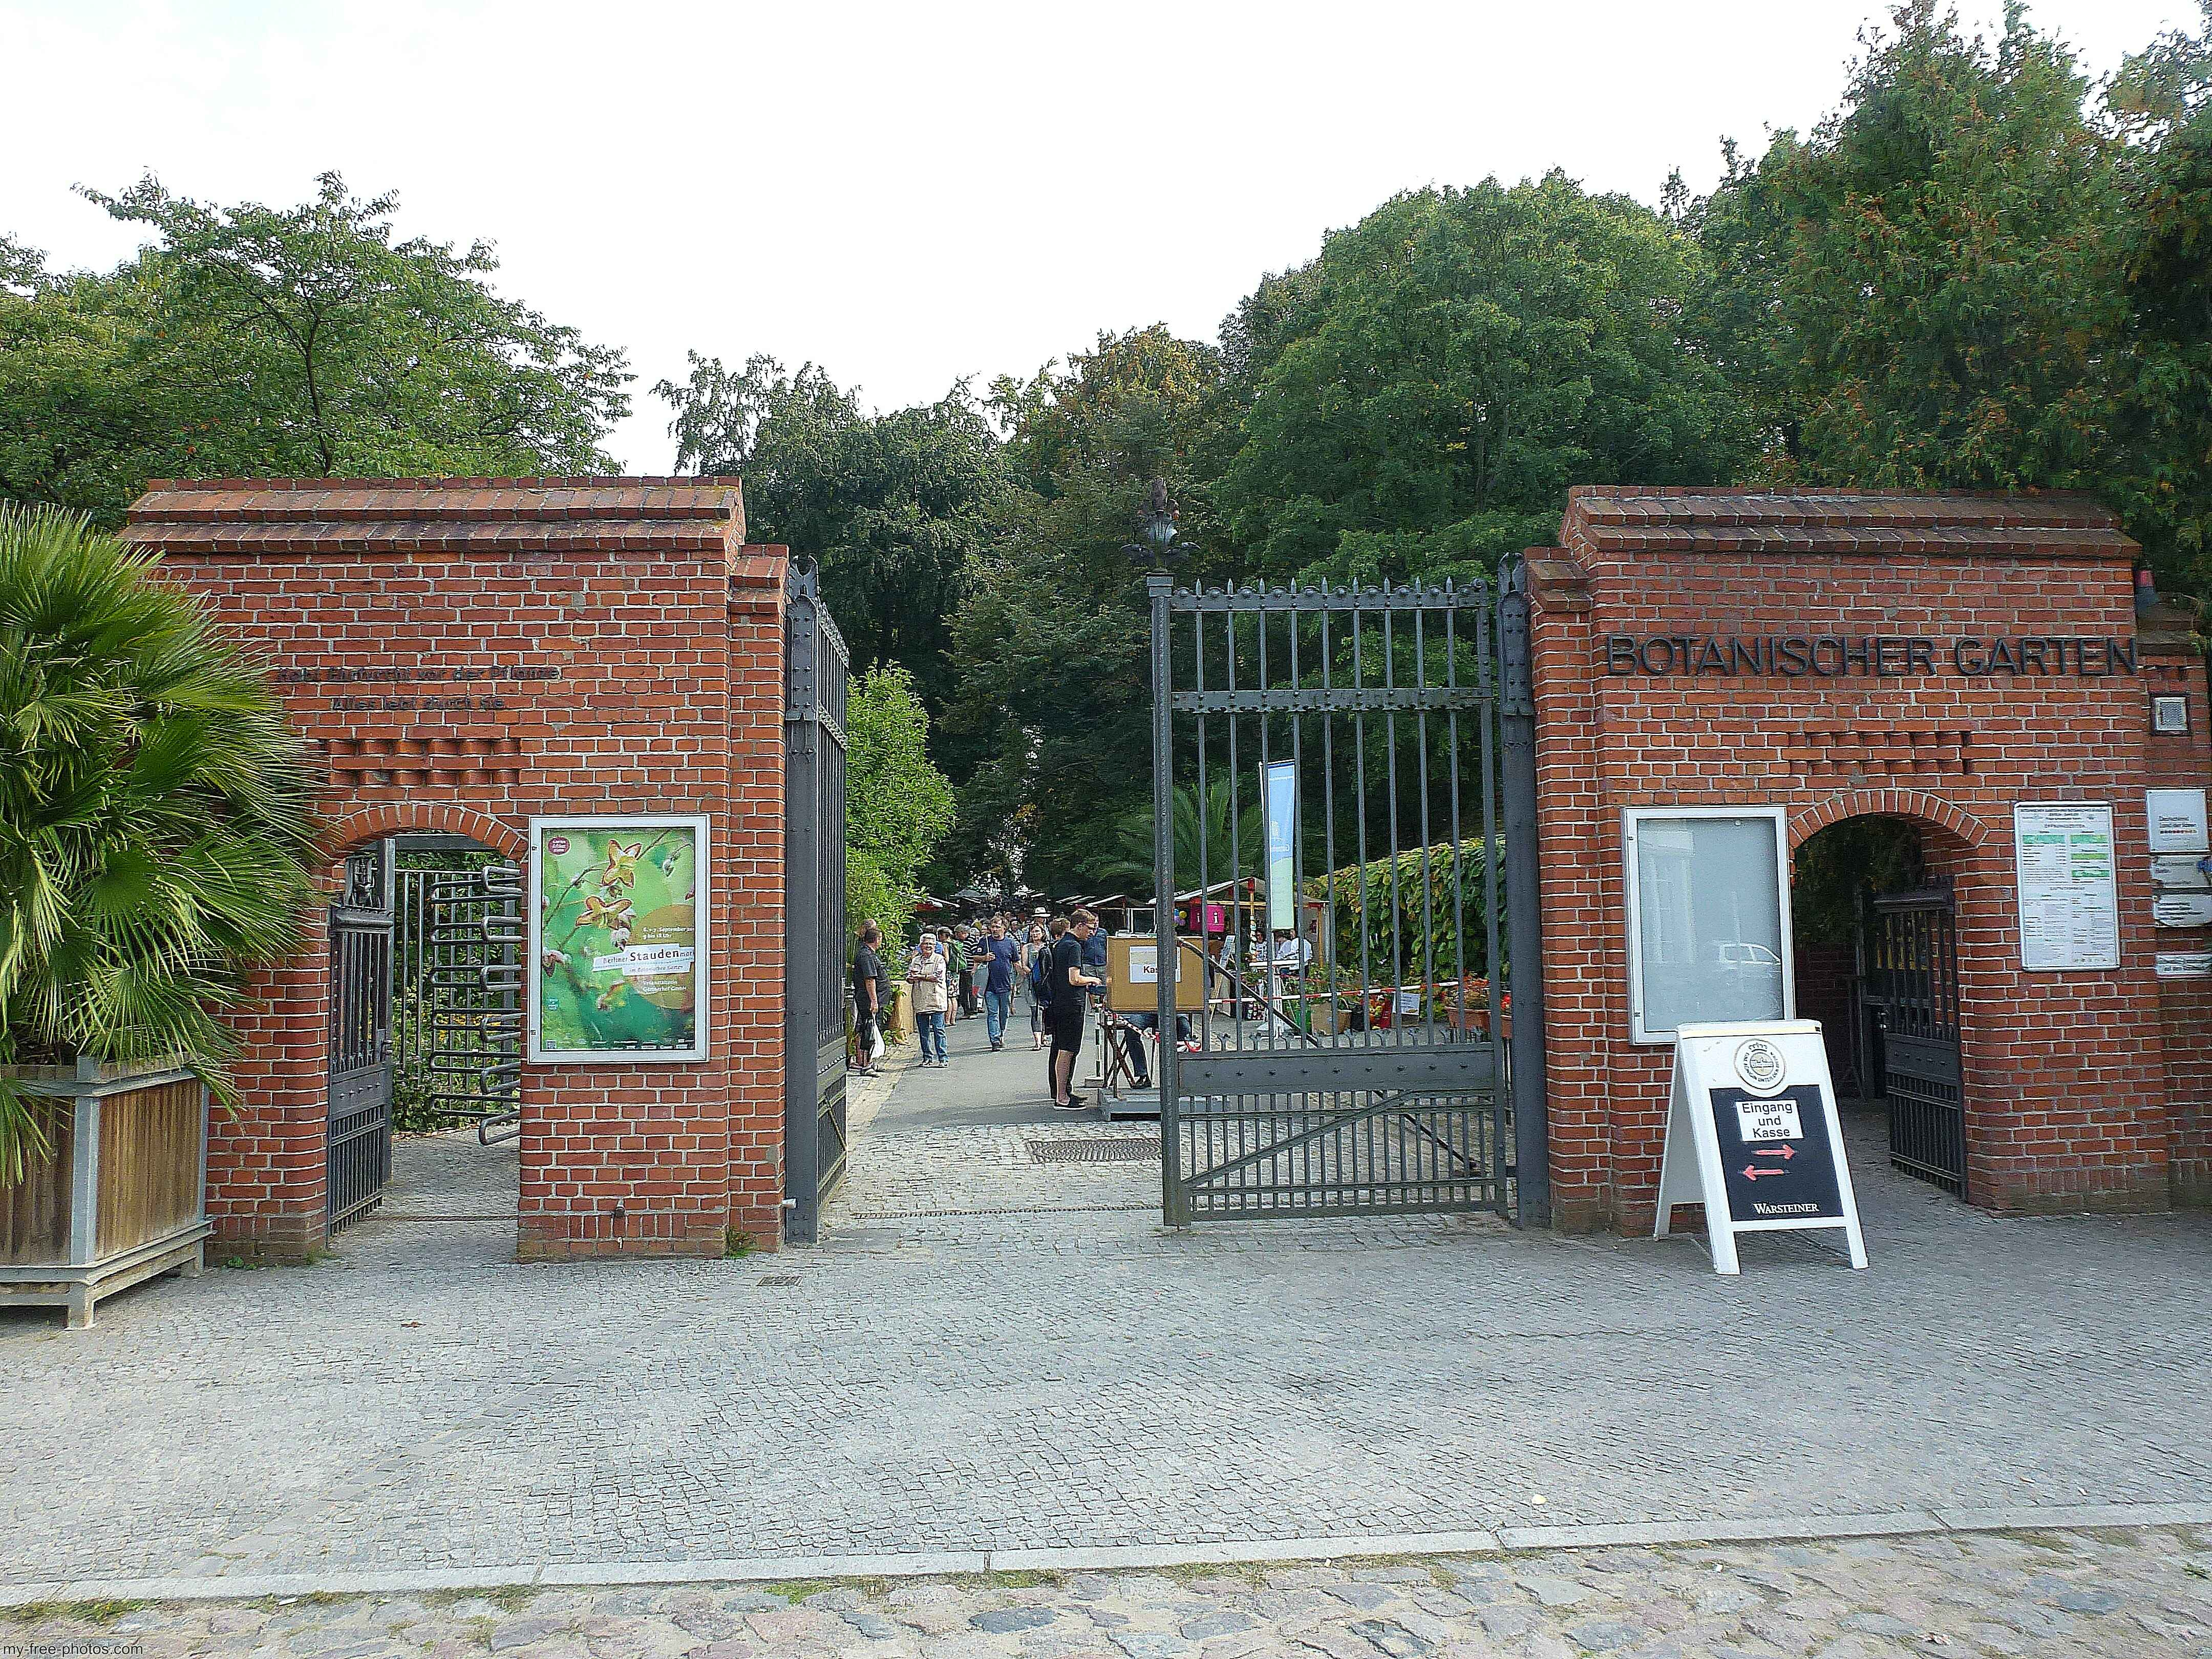 Botanical garden,Berlin